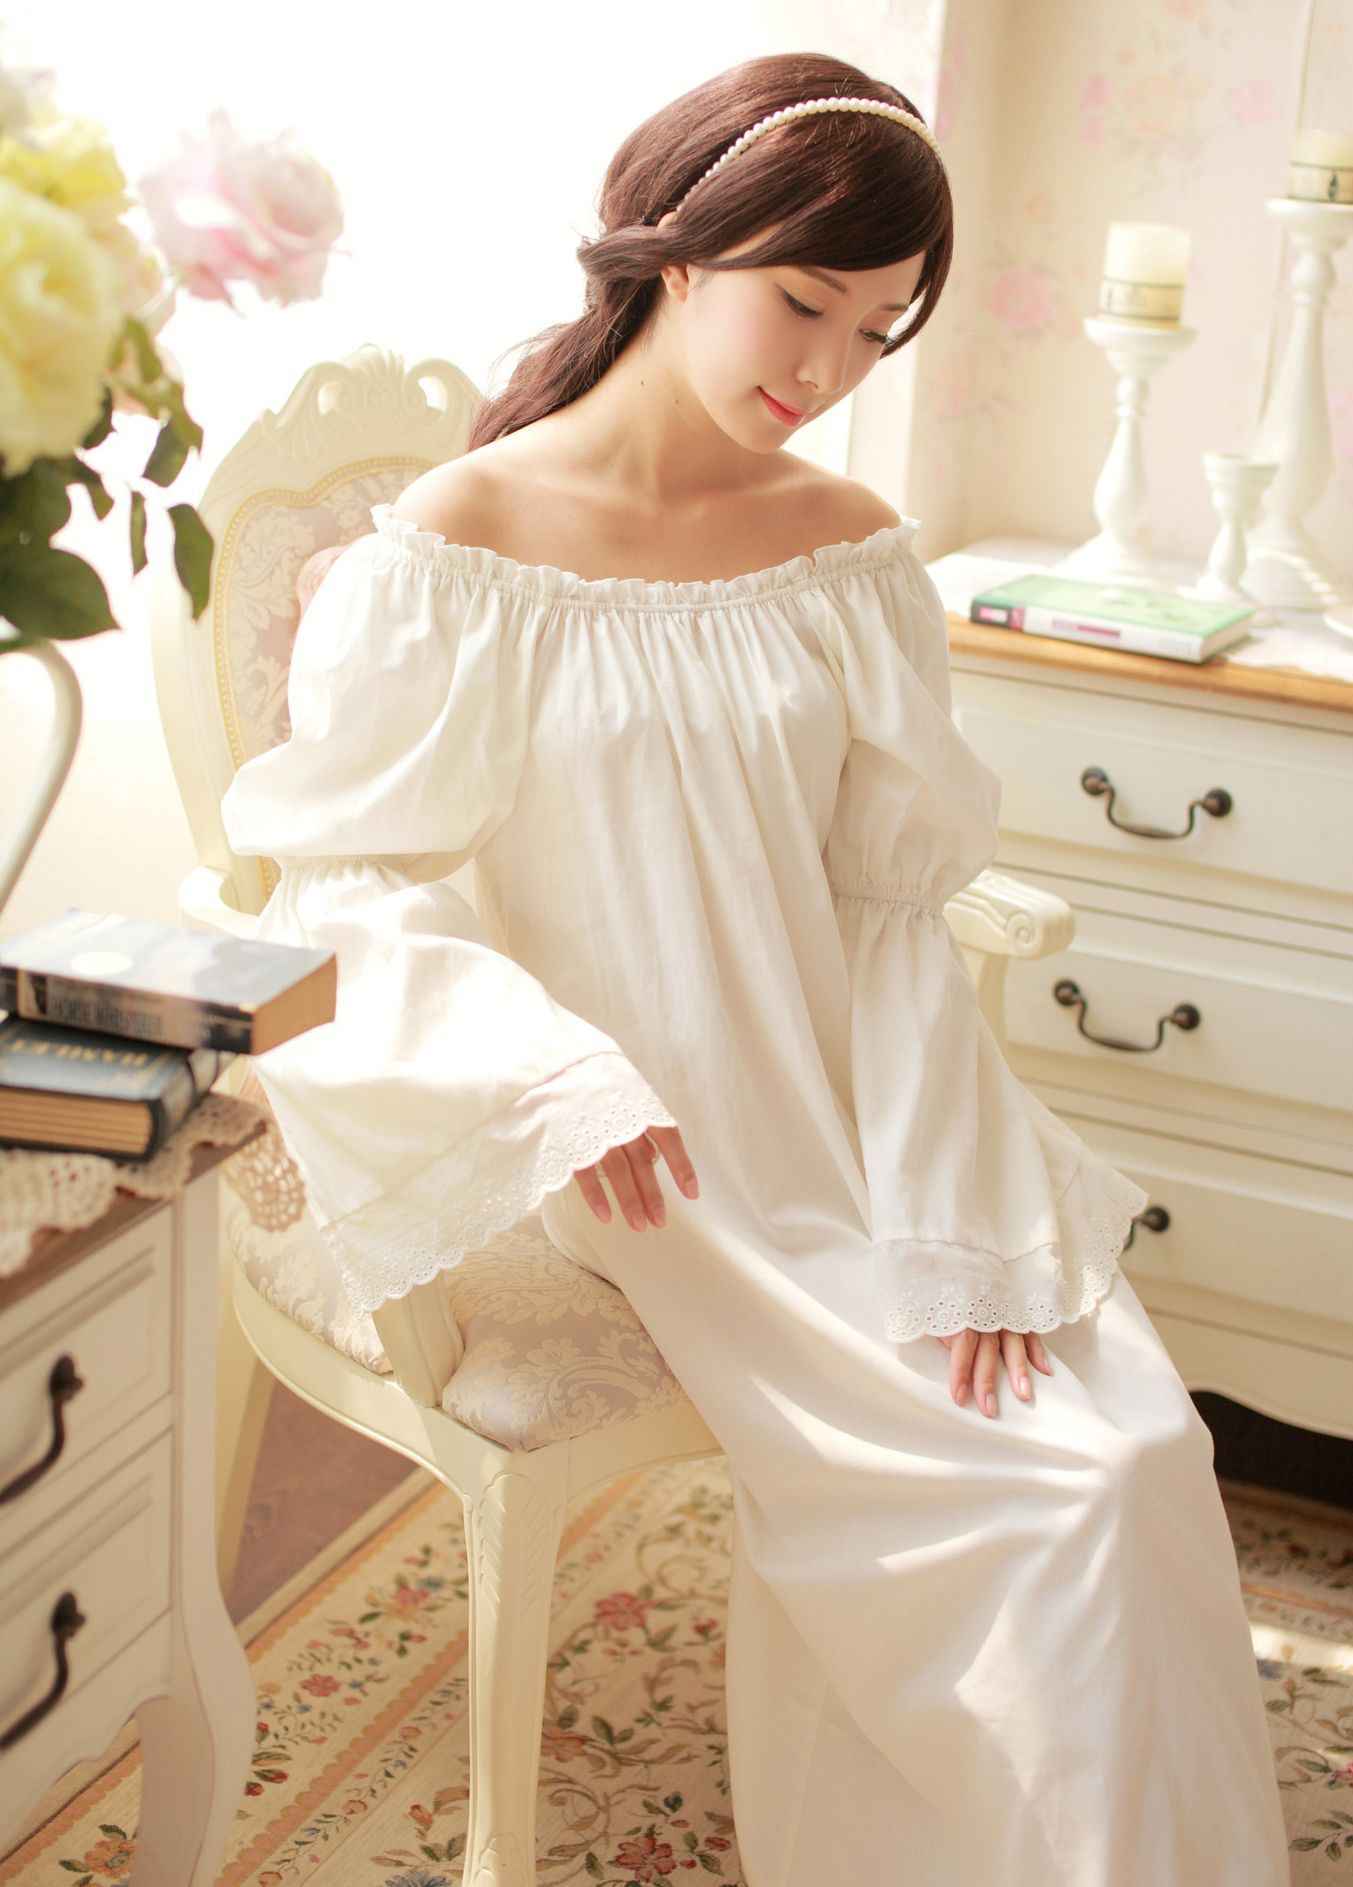 cdecfd491 Eslpodcast prinsty royal 100% wind cotton flare sleeve princess ...